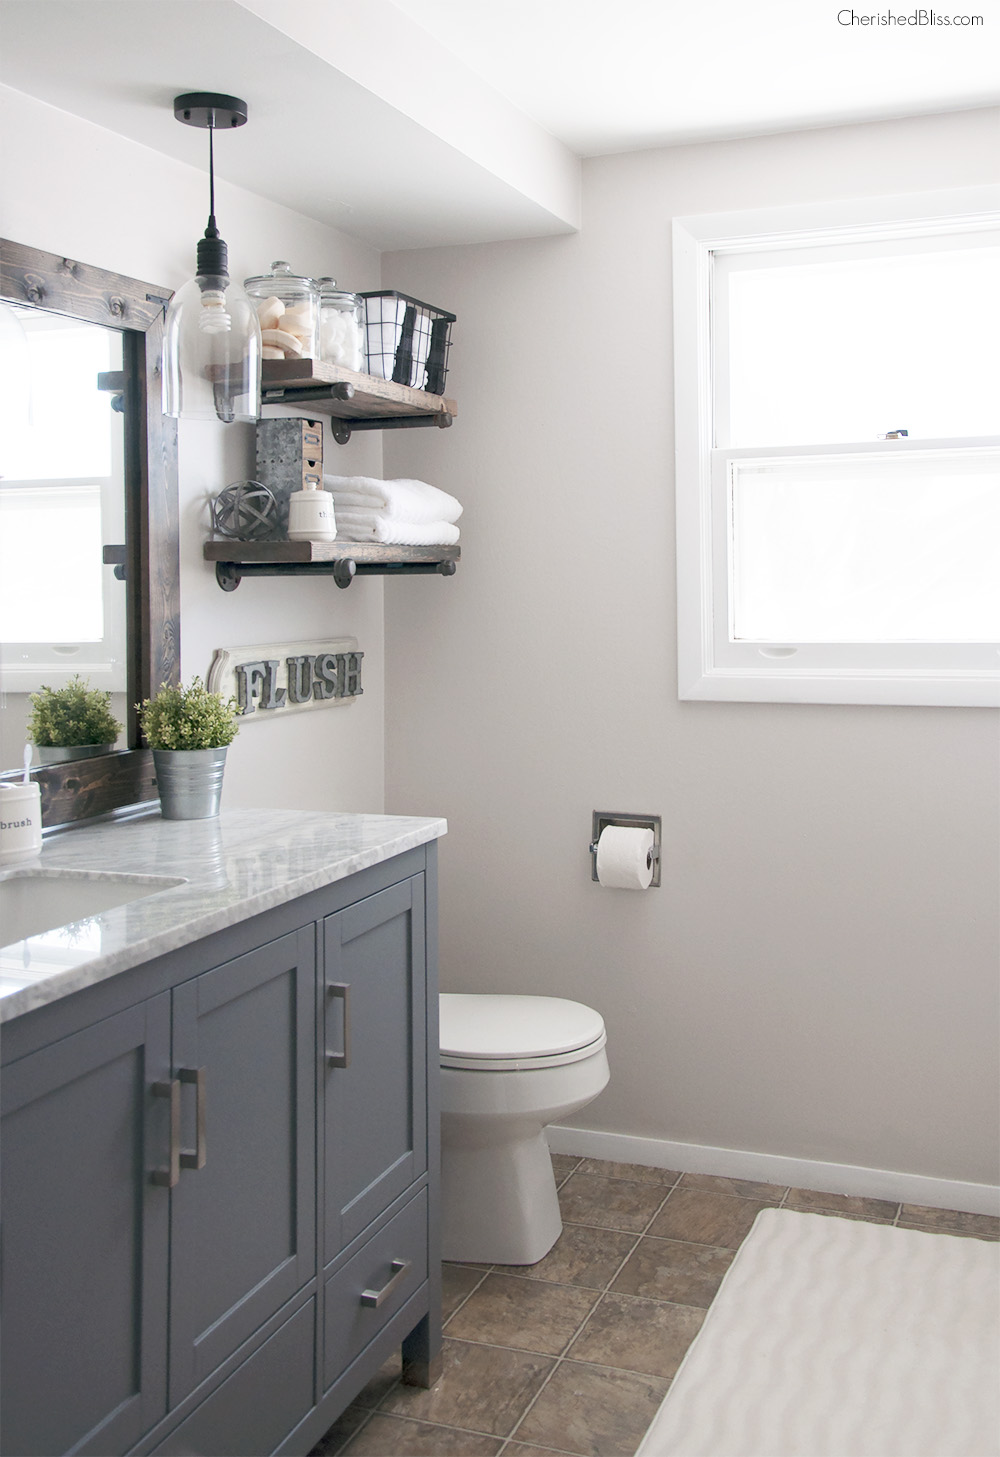 Bathroom makeovers for industrial country-style bathrooms: paint bathroom cabinets in deep gray up to XJNAMJQ